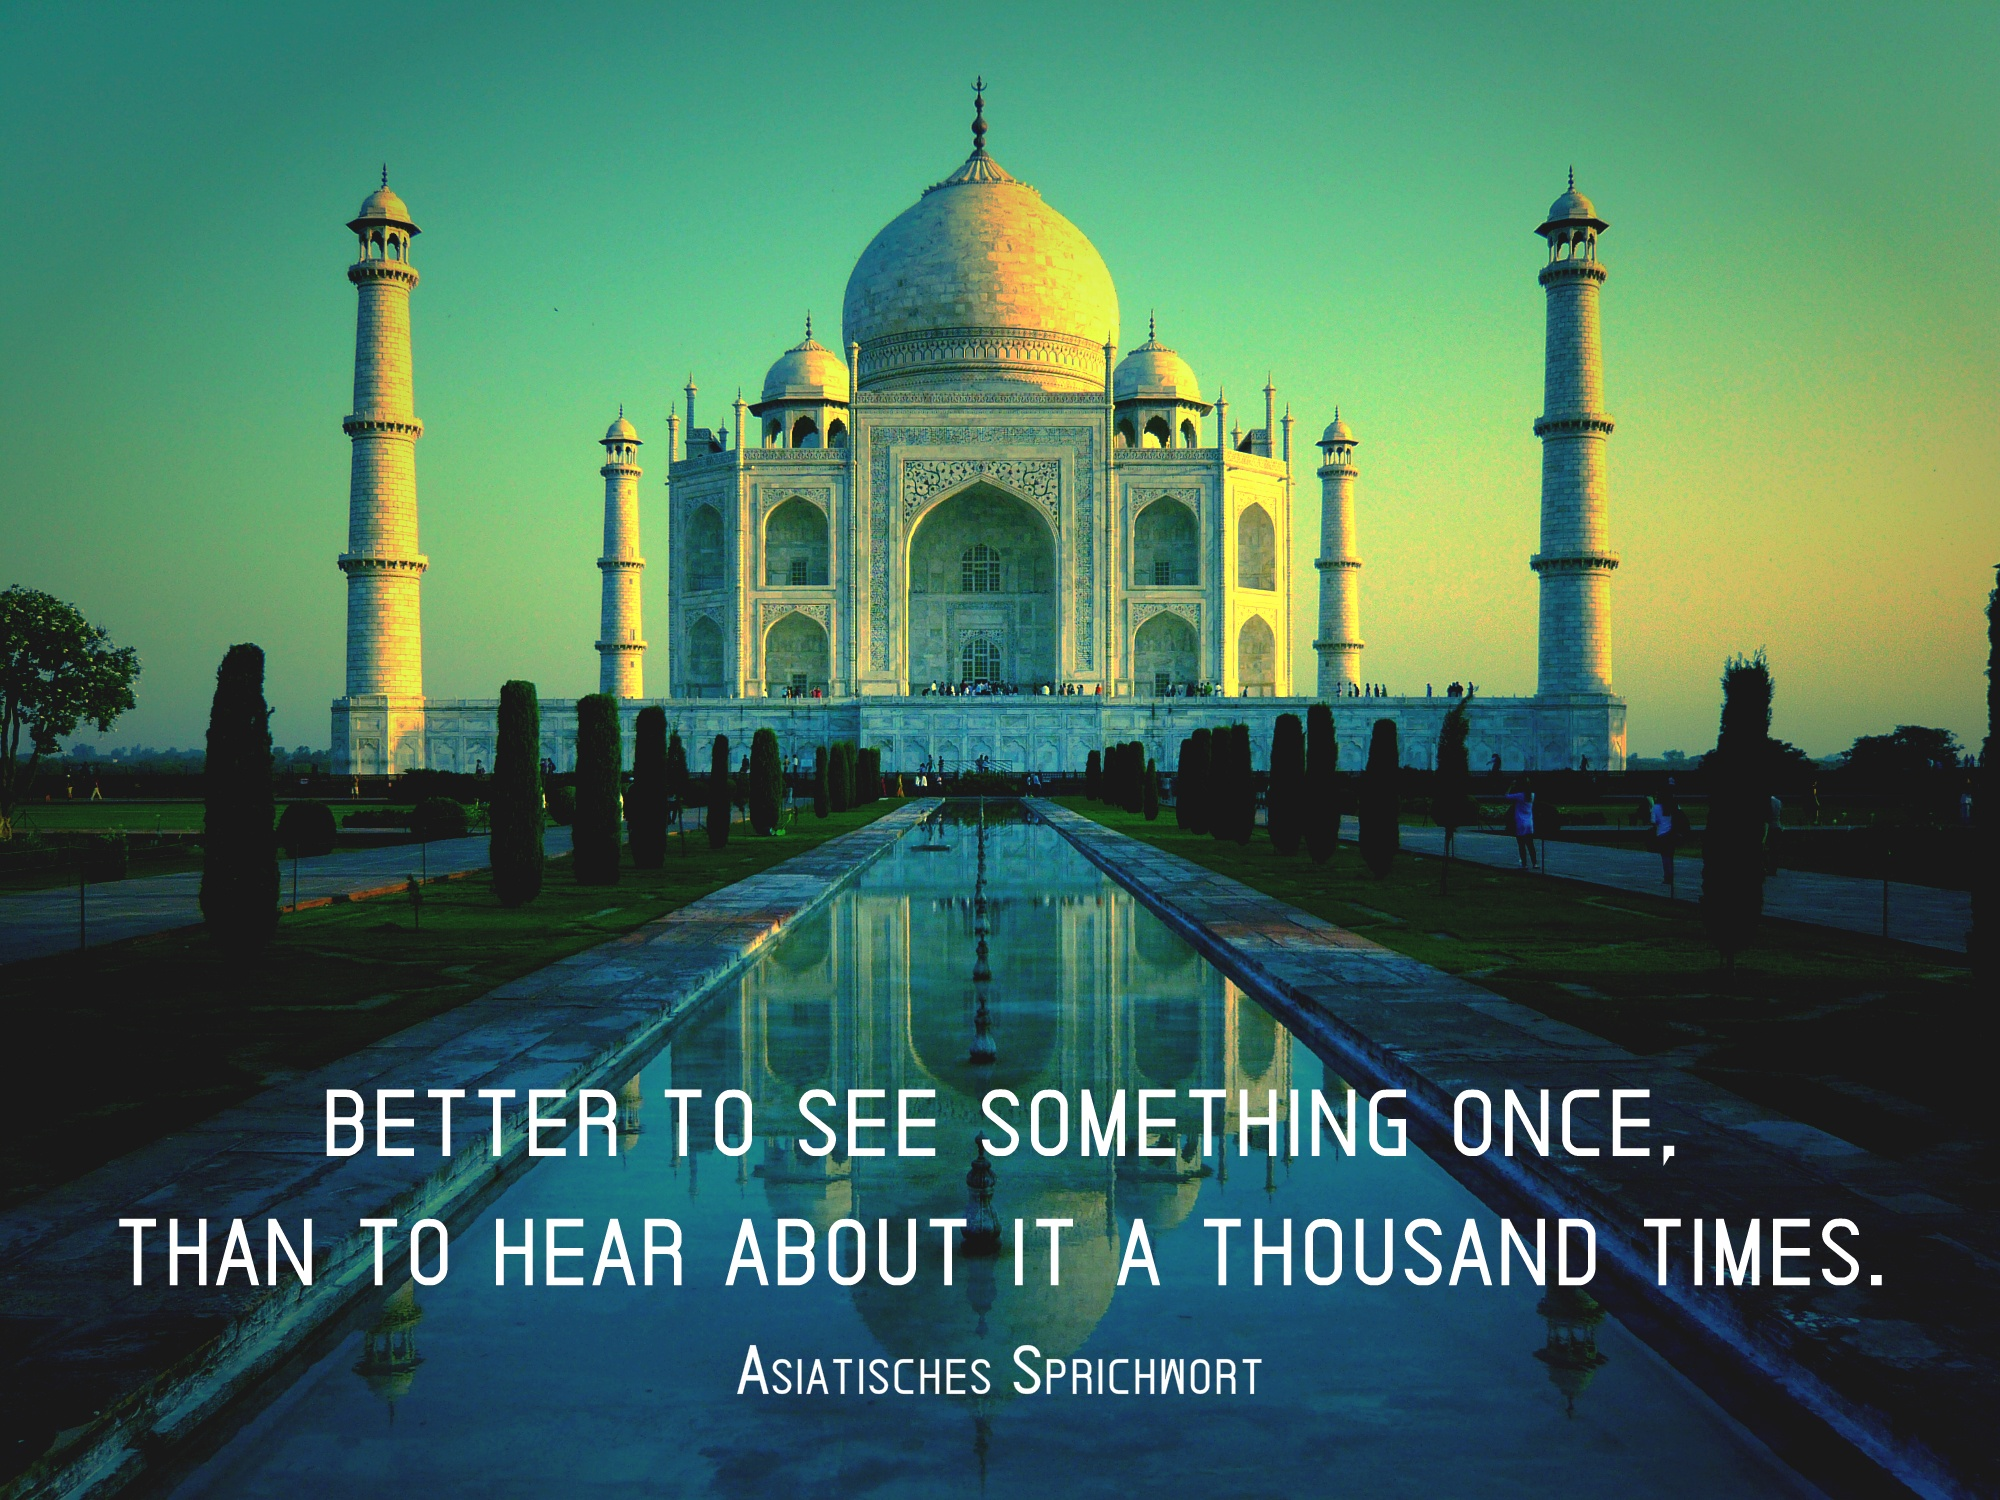 It's better to see something once than to hear about it a thousand times.